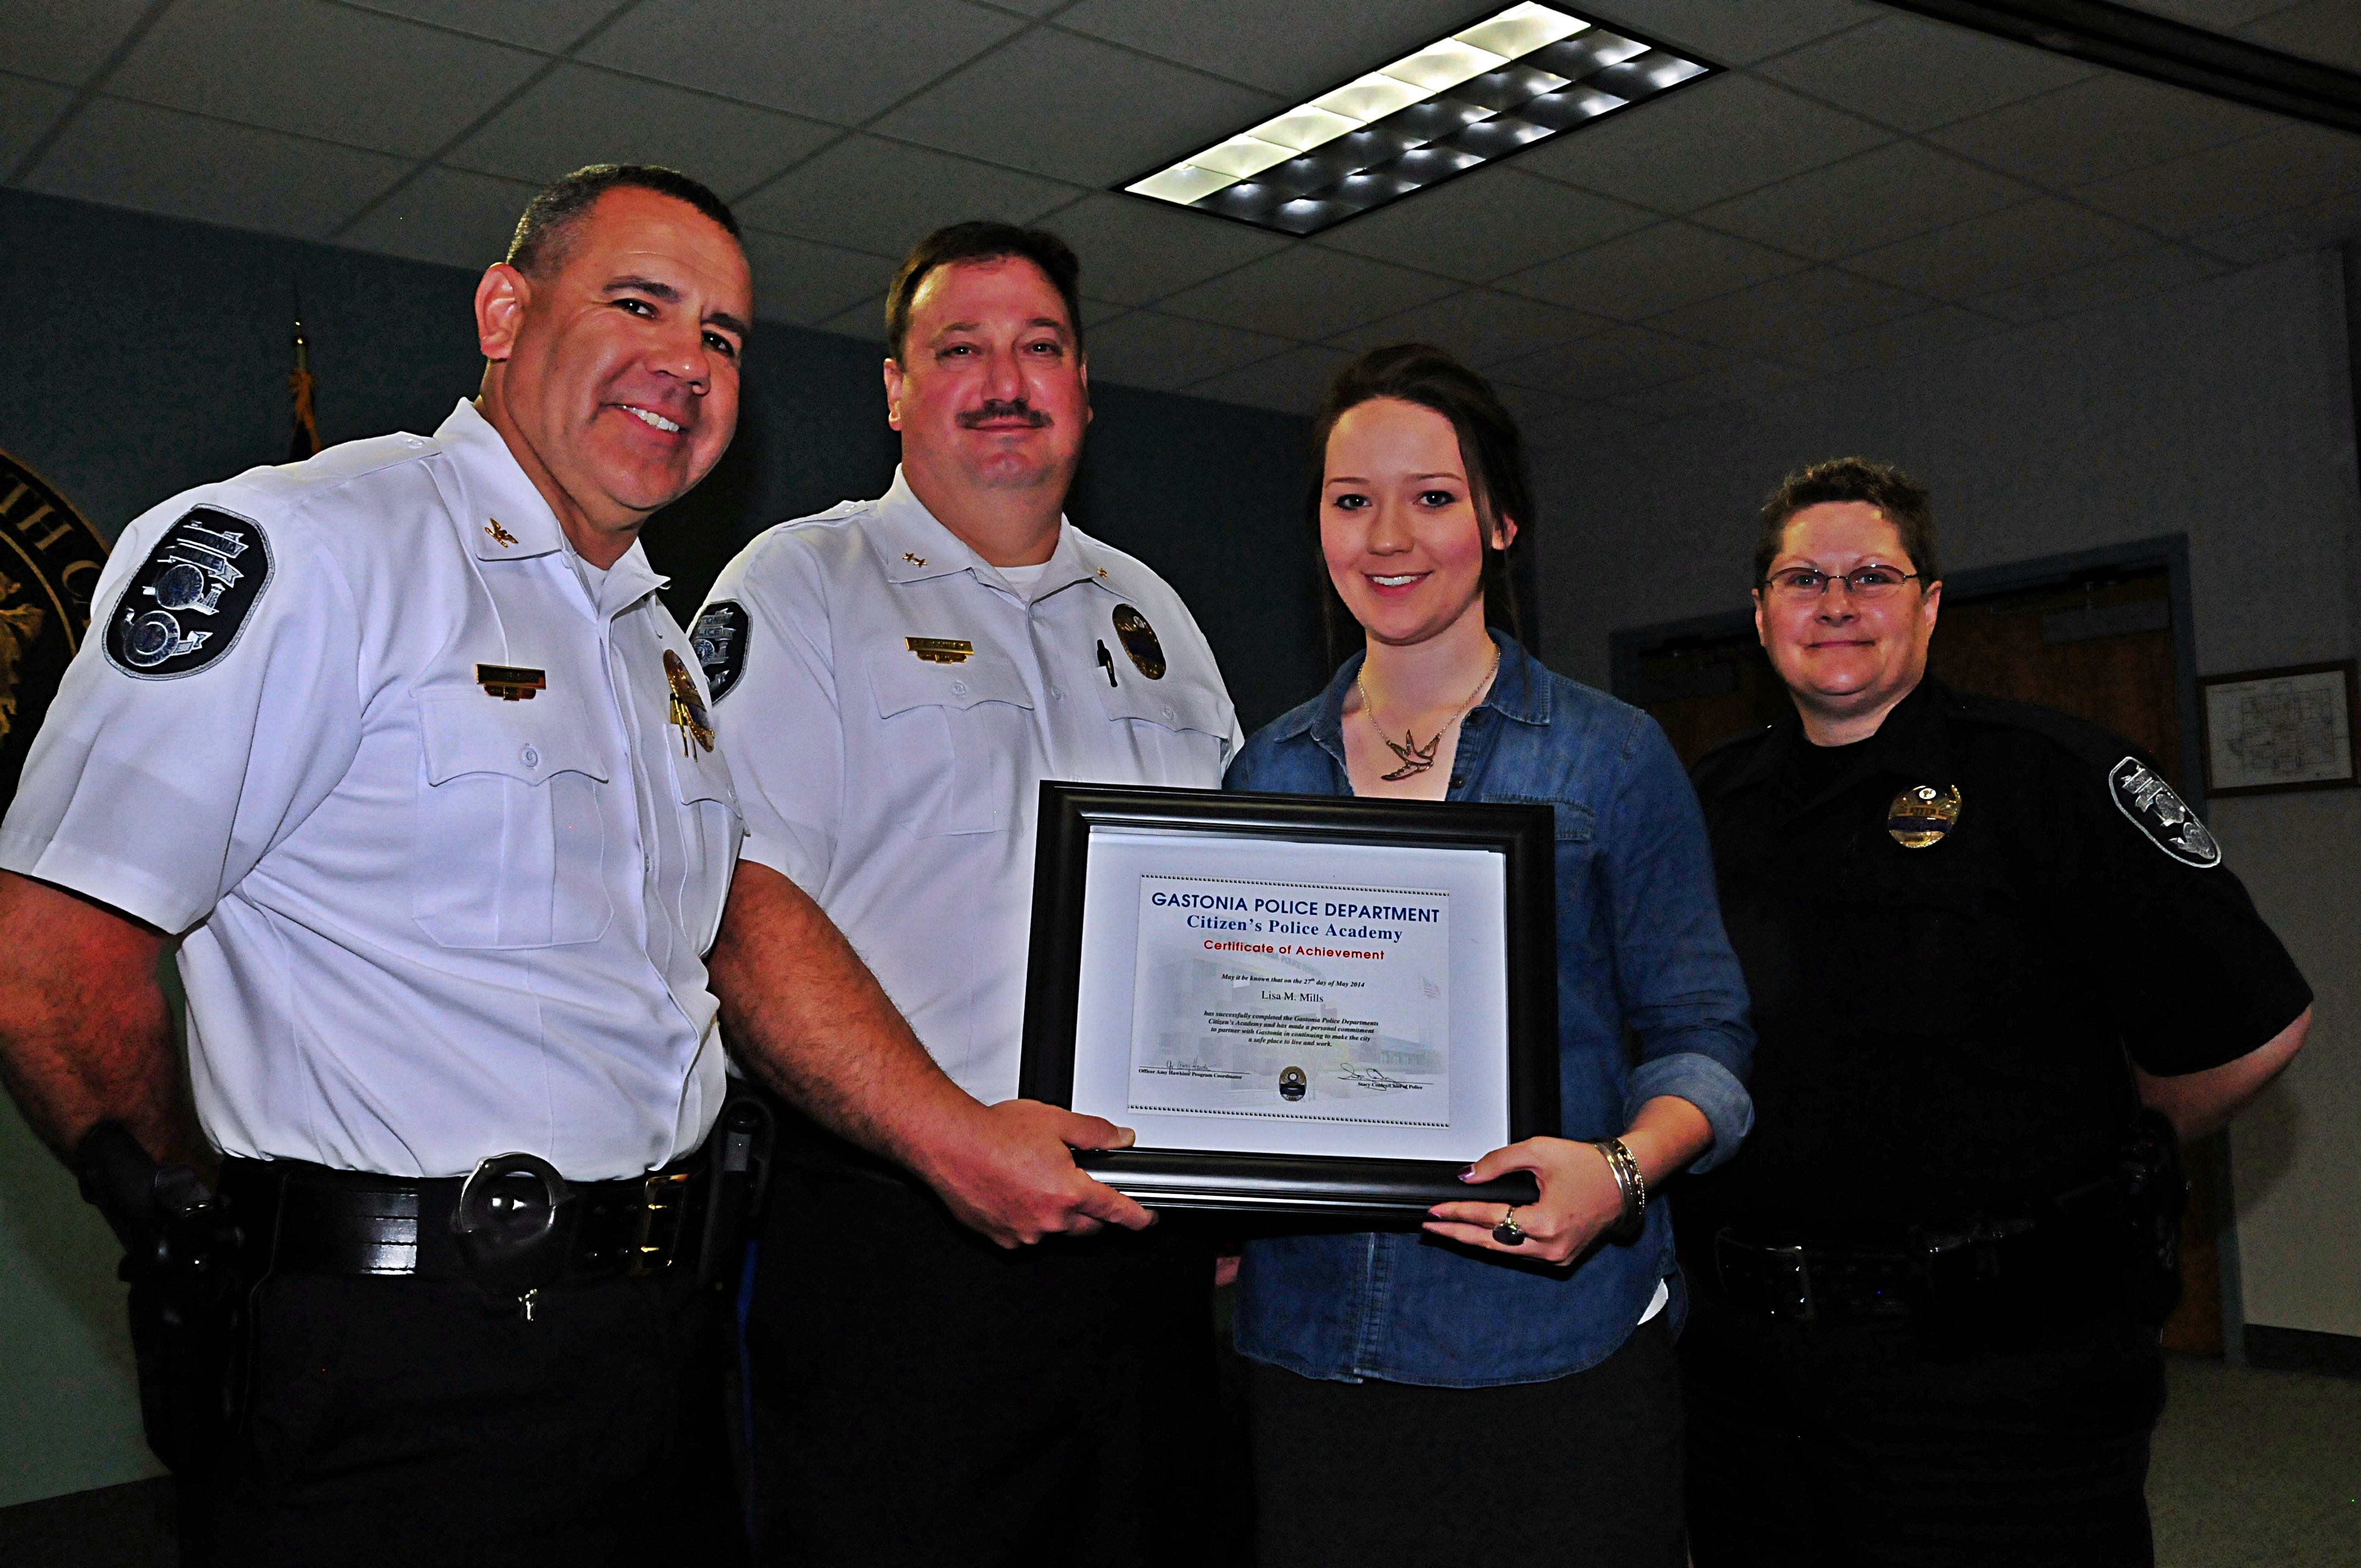 Citizens Police Academy four peeps